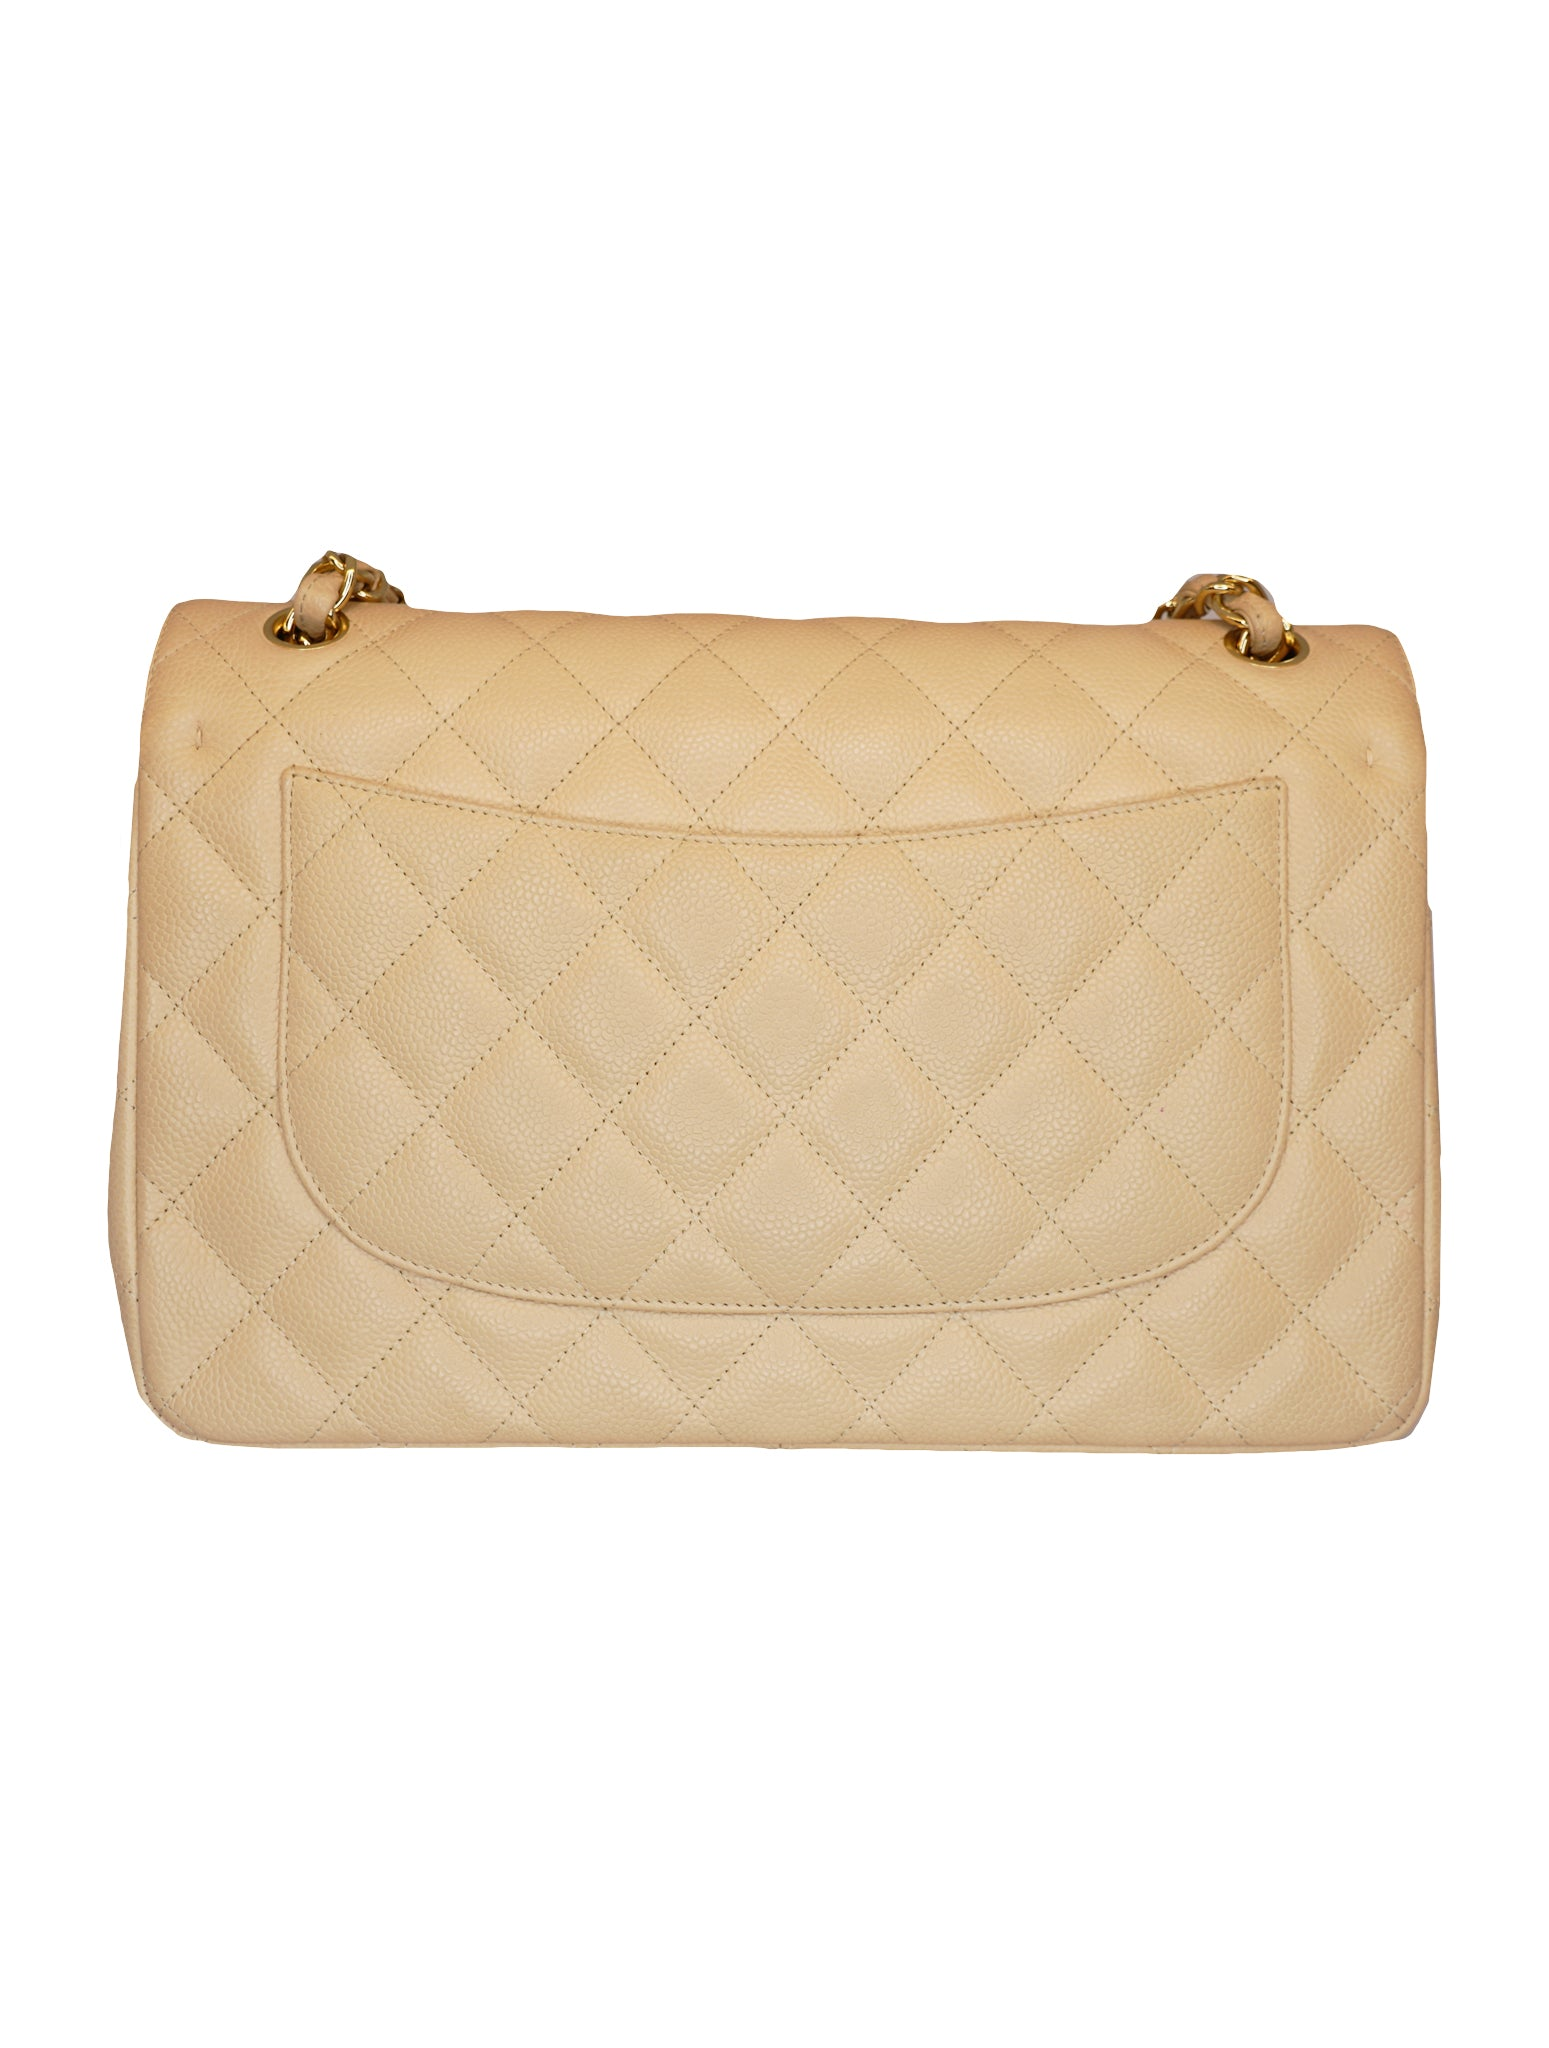 BEIGE CAVIAR LEATHER CLASSIC DOUBLE FLAP